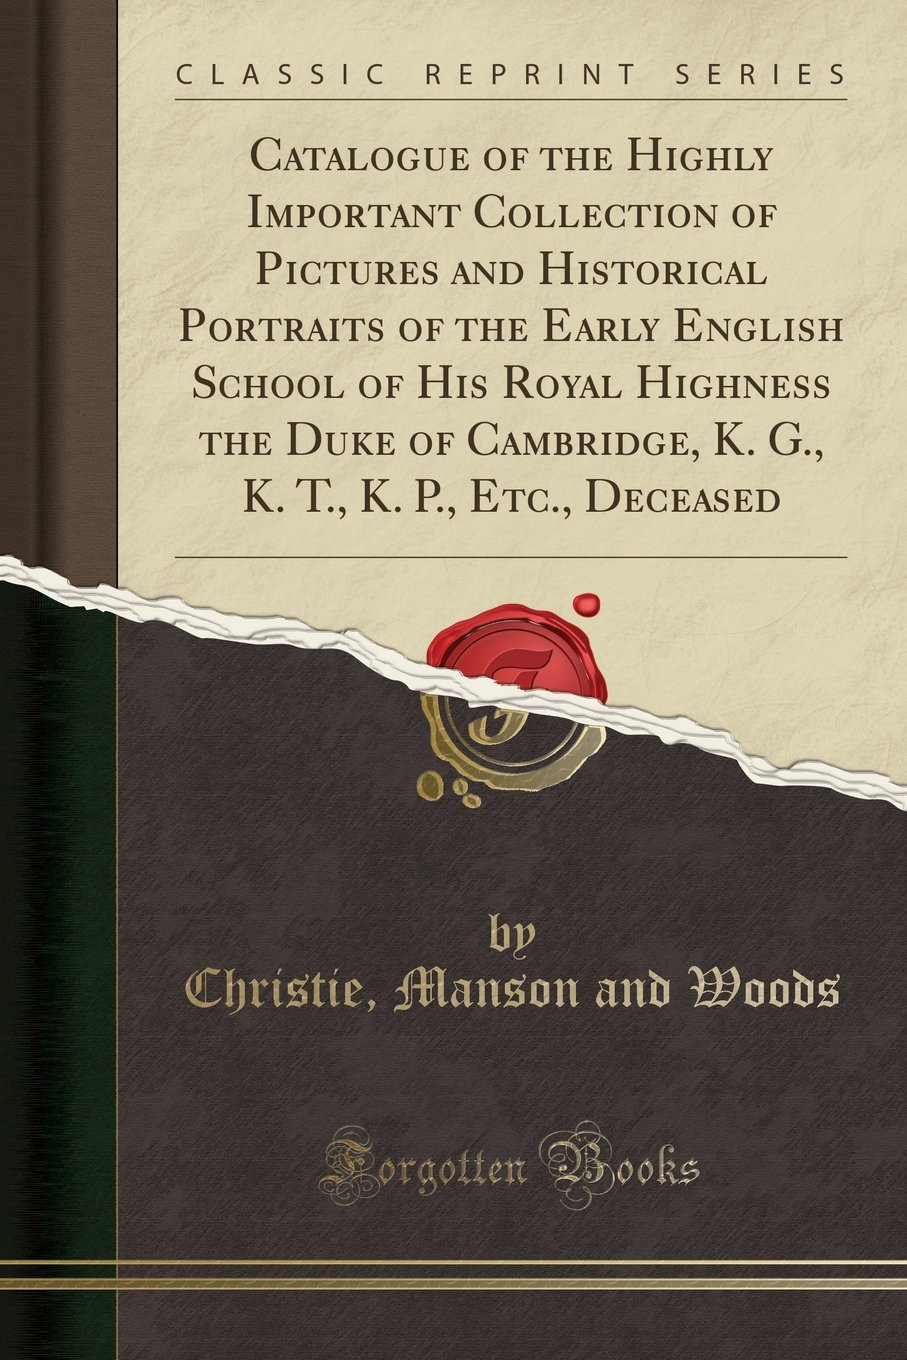 Download Catalogue of the Highly Important Collection of Pictures and Historical Portraits of the Early English School of His Royal Highness the Duke of ... T., K. P., Etc., Deceased (Classic Reprint) pdf